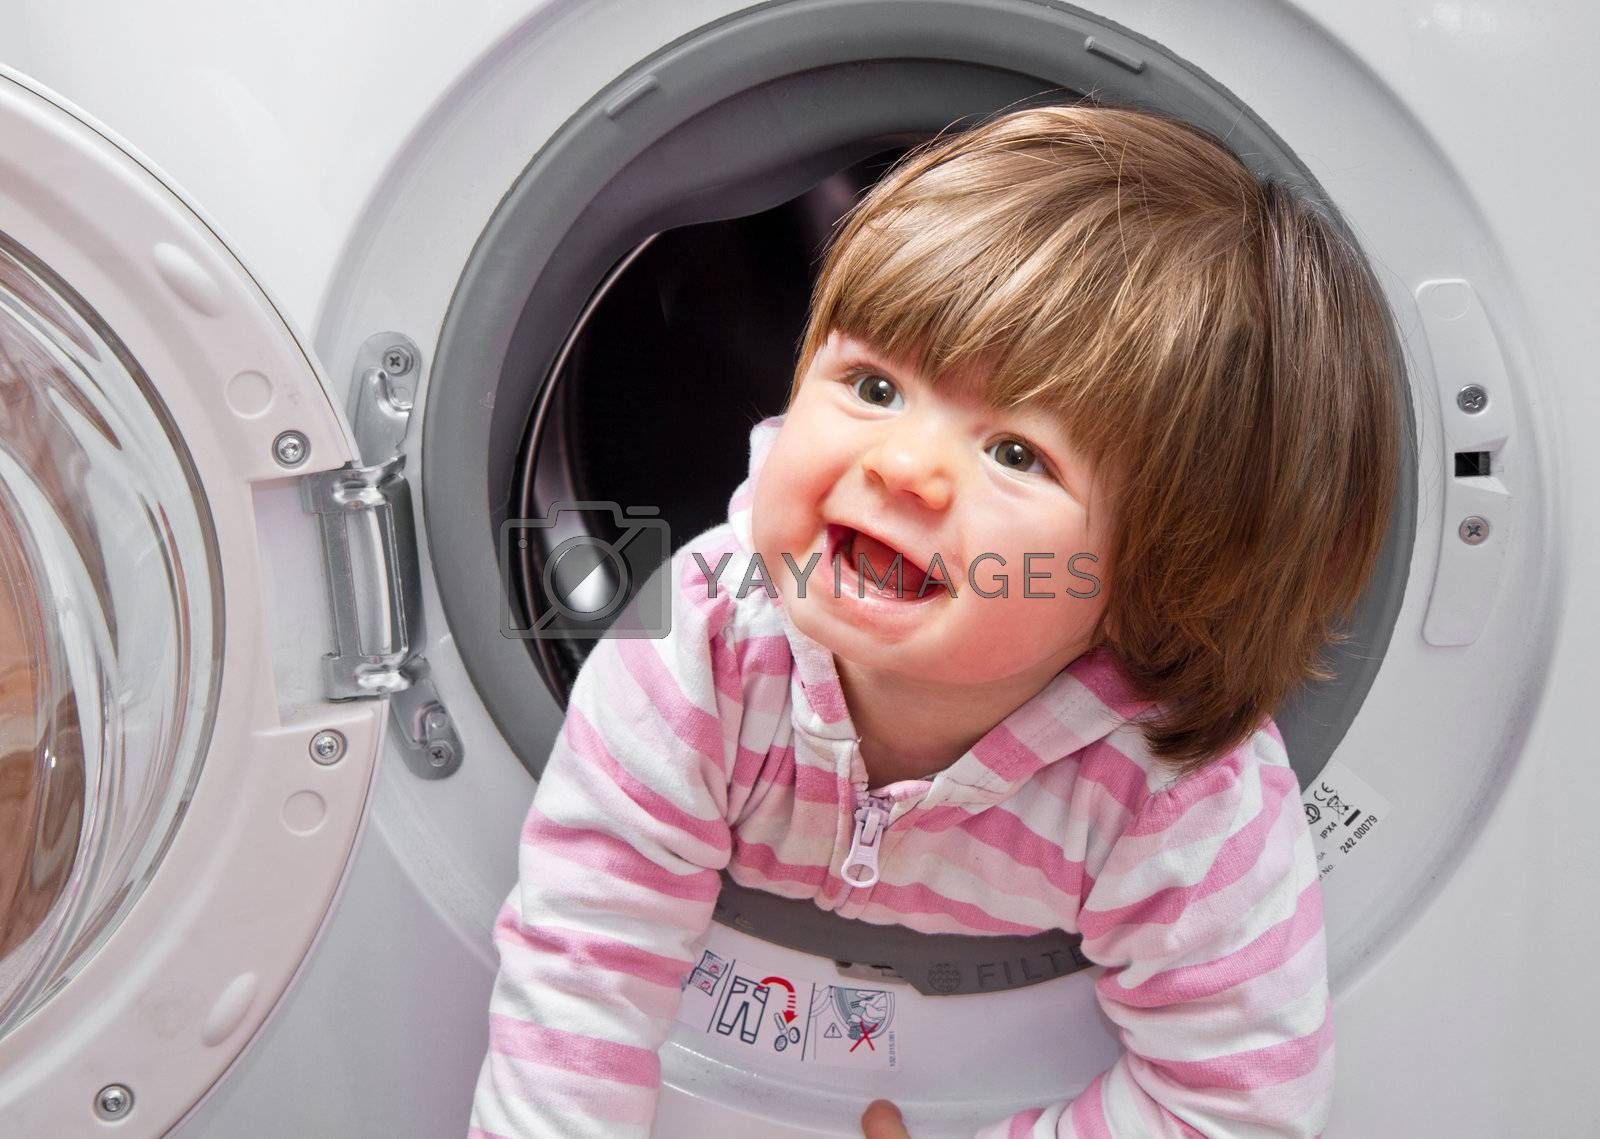 baby girl in the washing machine by lsantilli